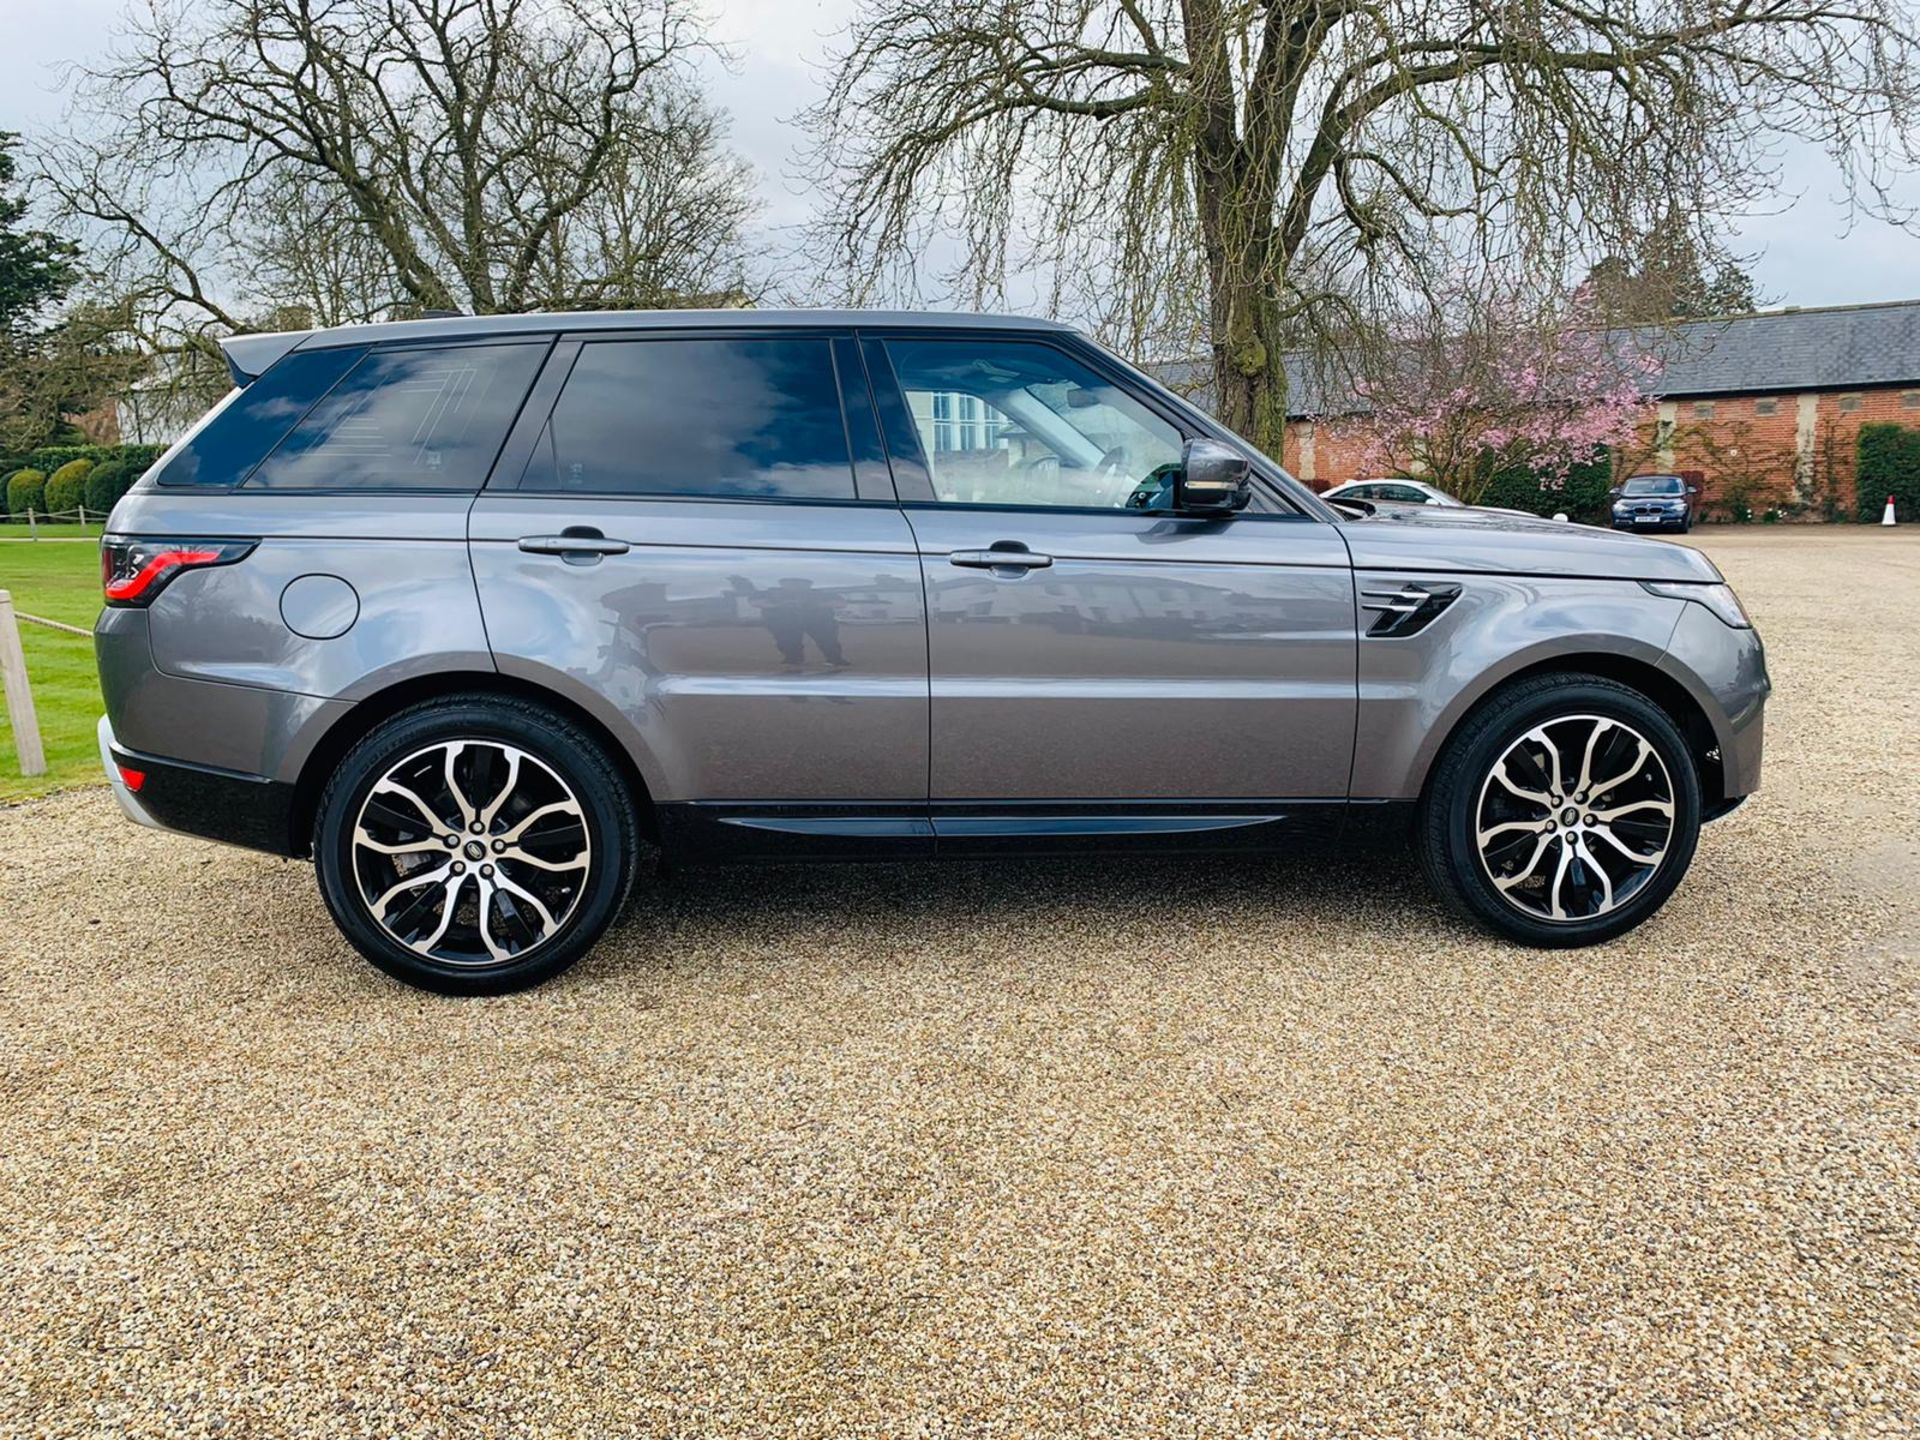 (RESERVE MET) Range Rover Sport 3.0 SDV6 HSE Auto - 2019 - 1 Keeper From New - Virtual Cockpit - - Image 7 of 42